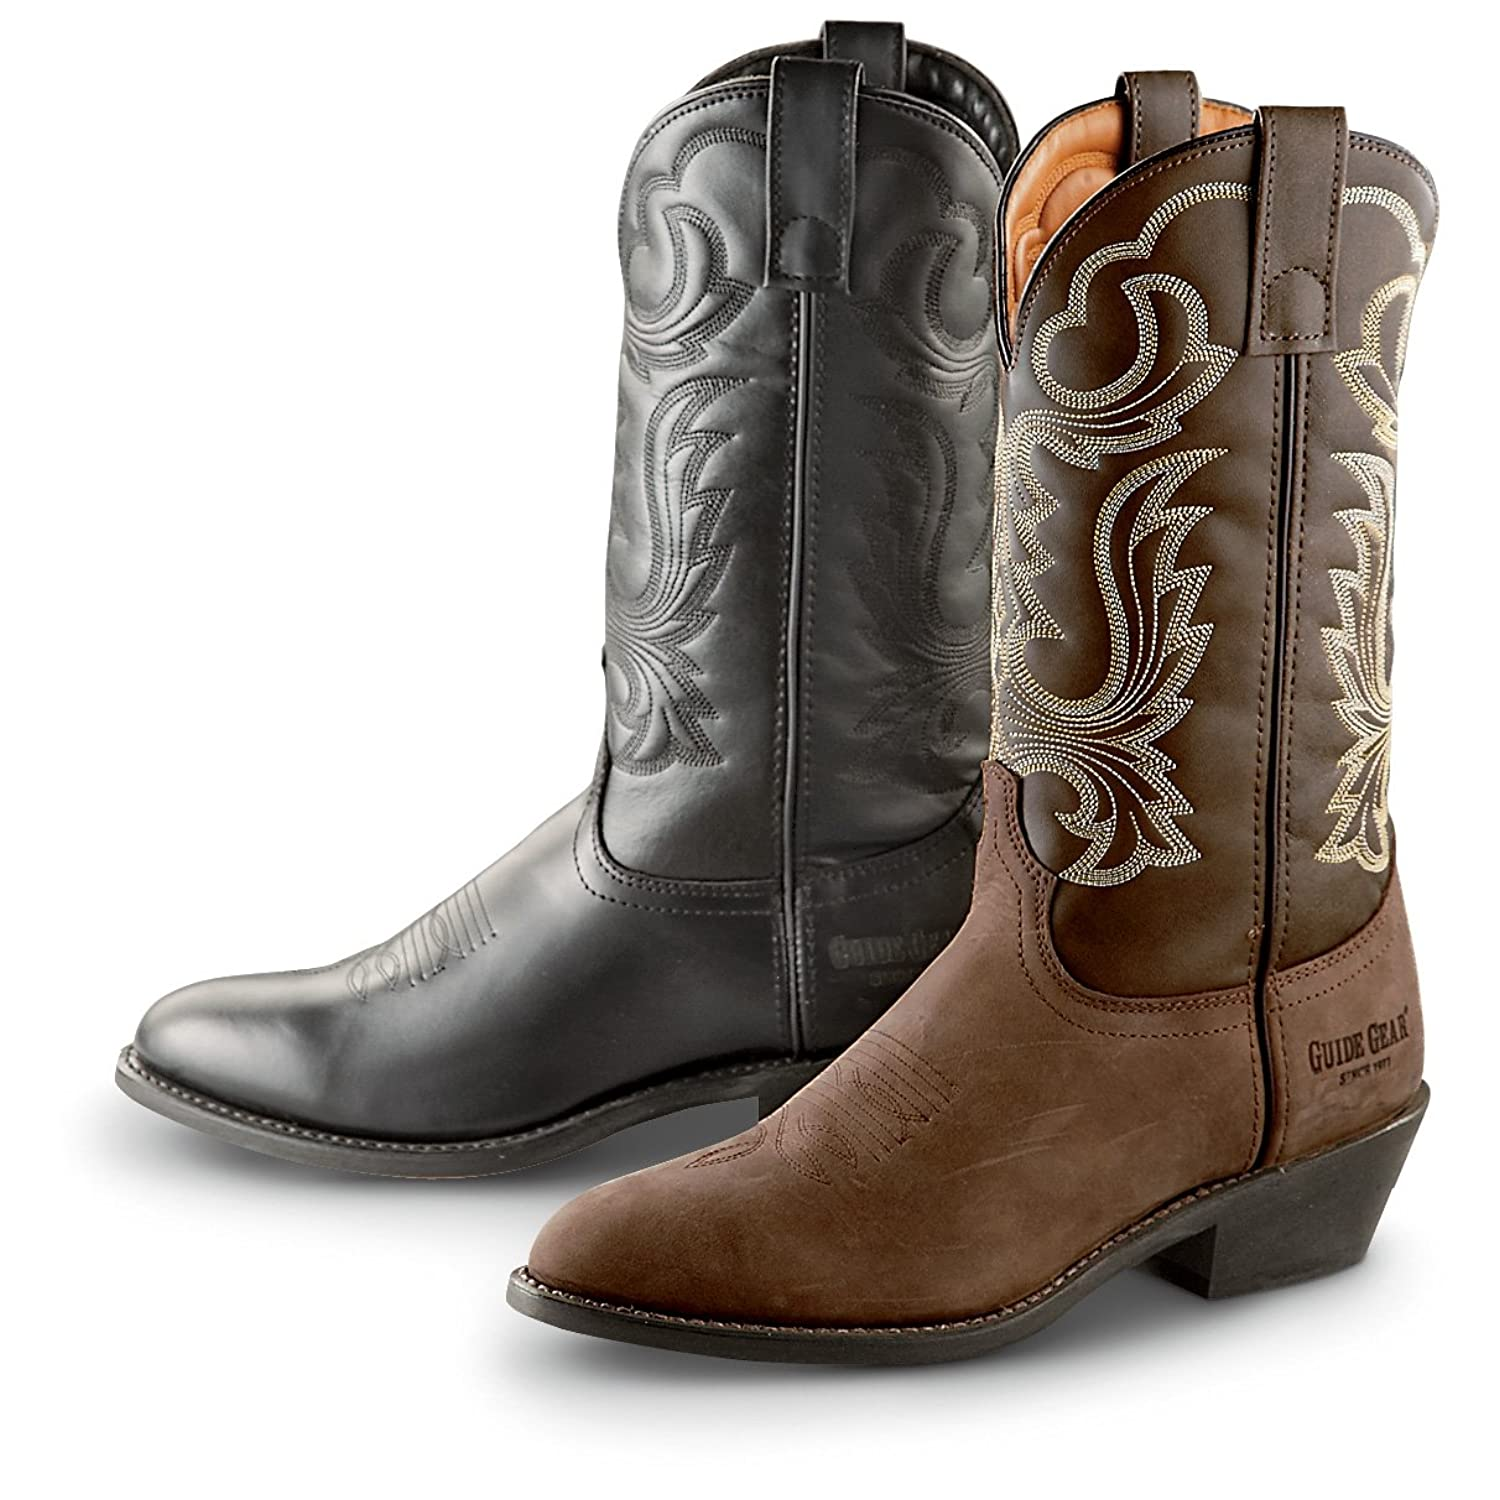 Cowboy Boots On Sale For Men - Boot Ri